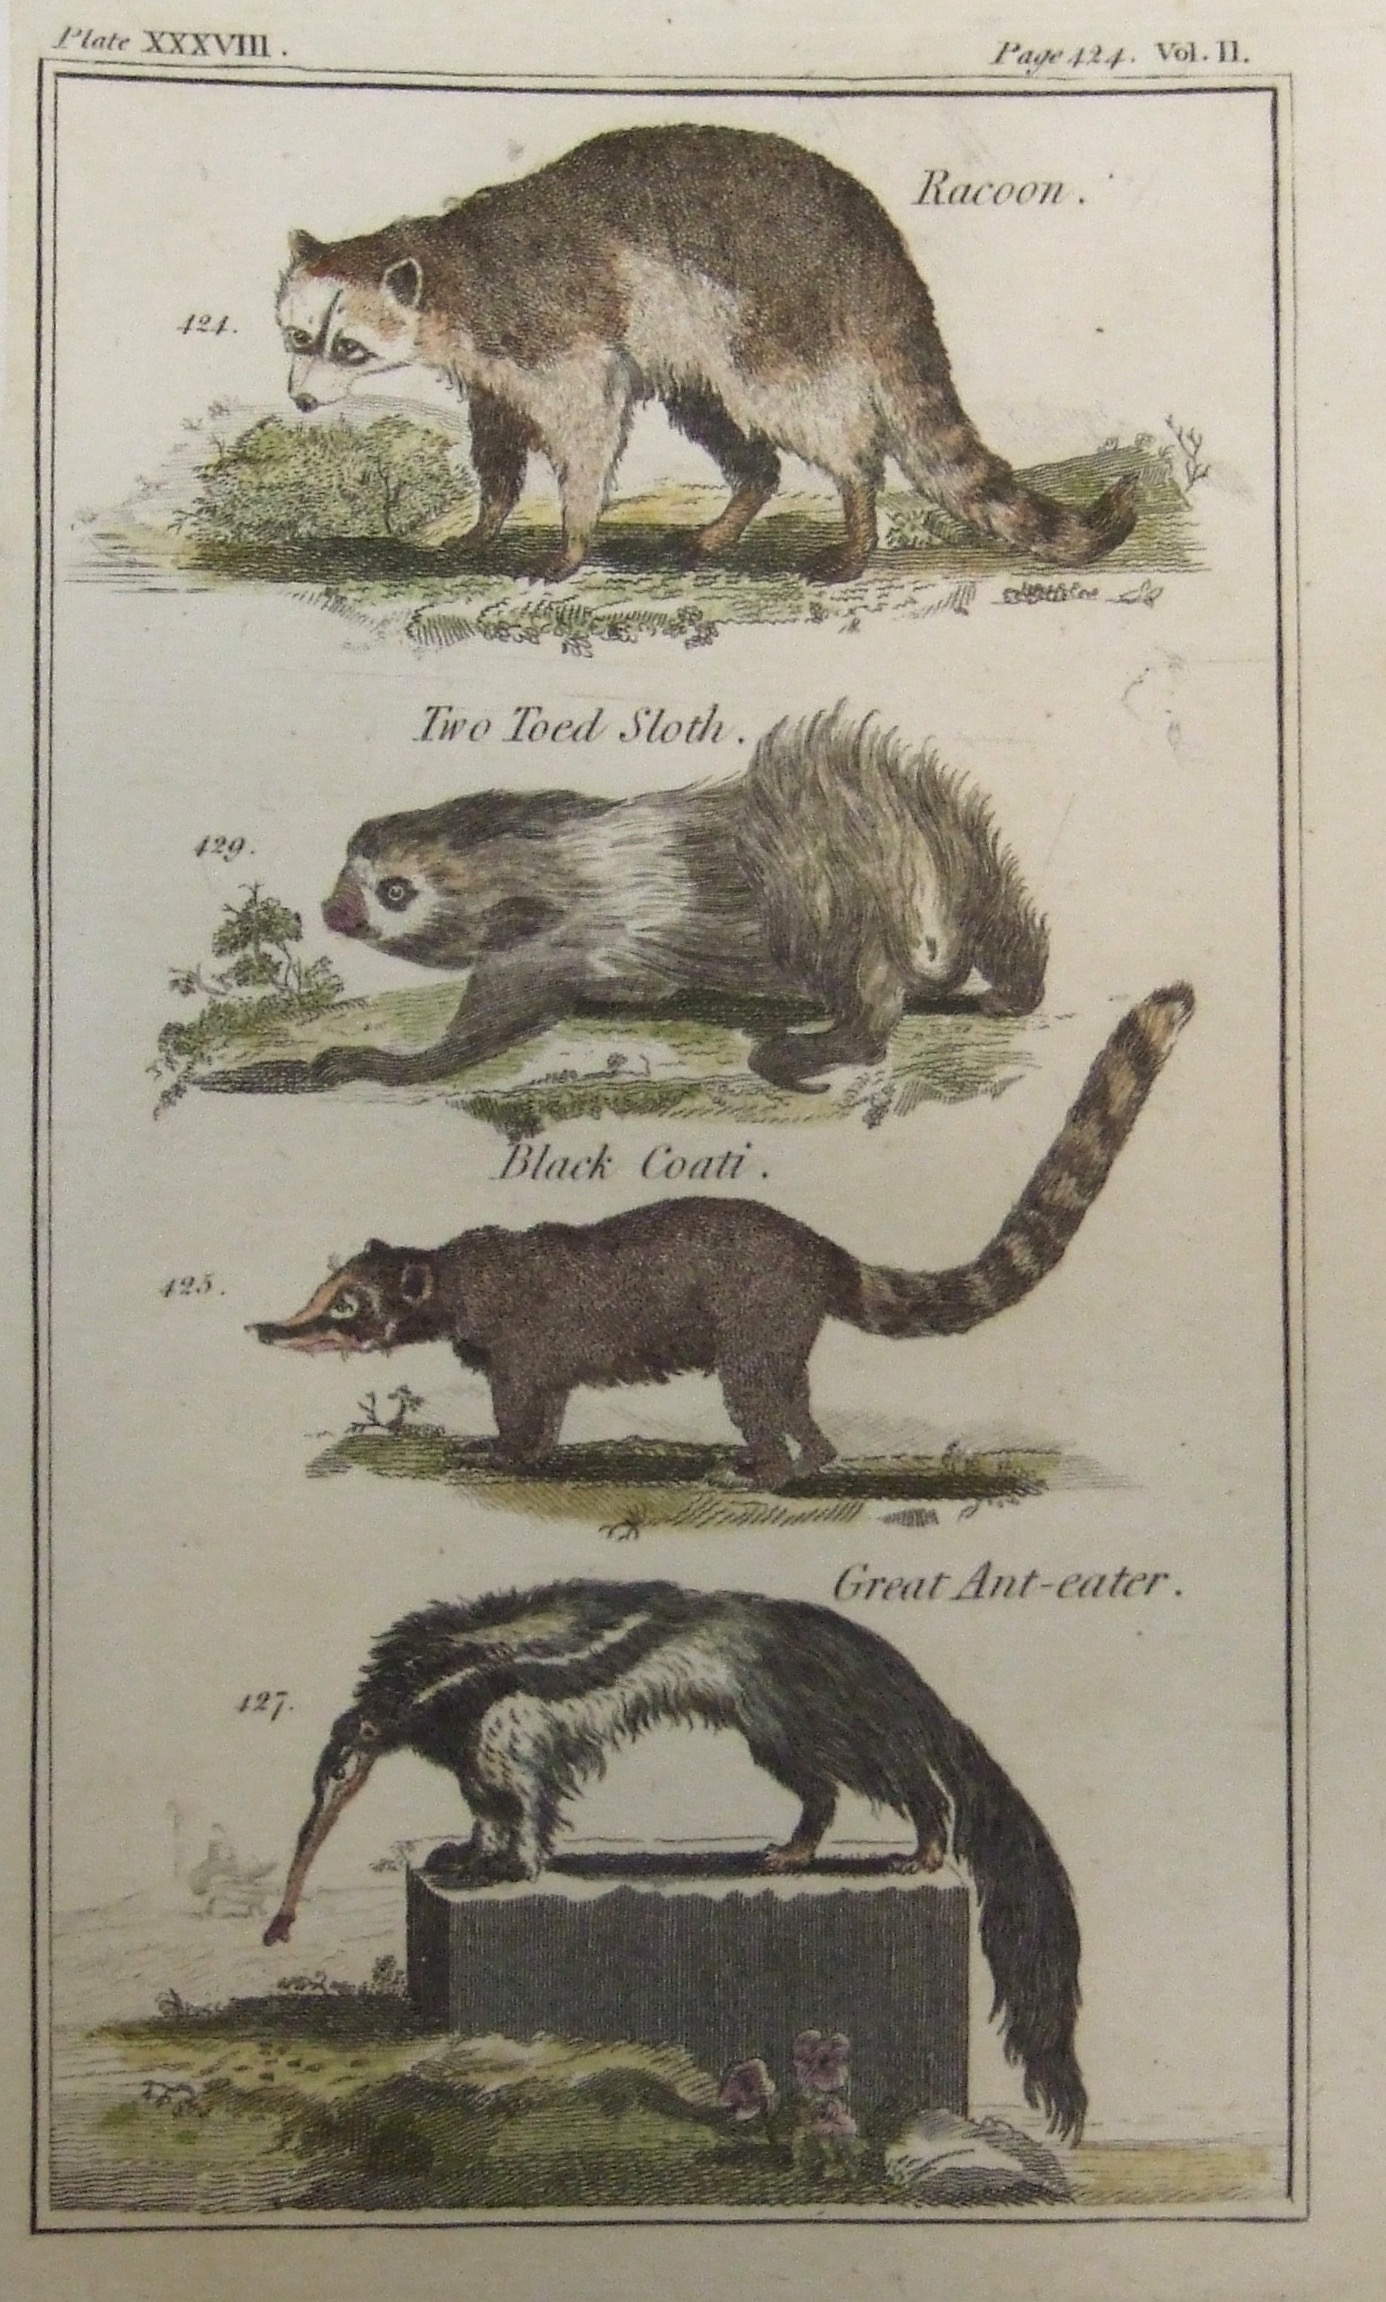 Racoon, Two Toed Sloth, Black Coati, Great Ant Eater